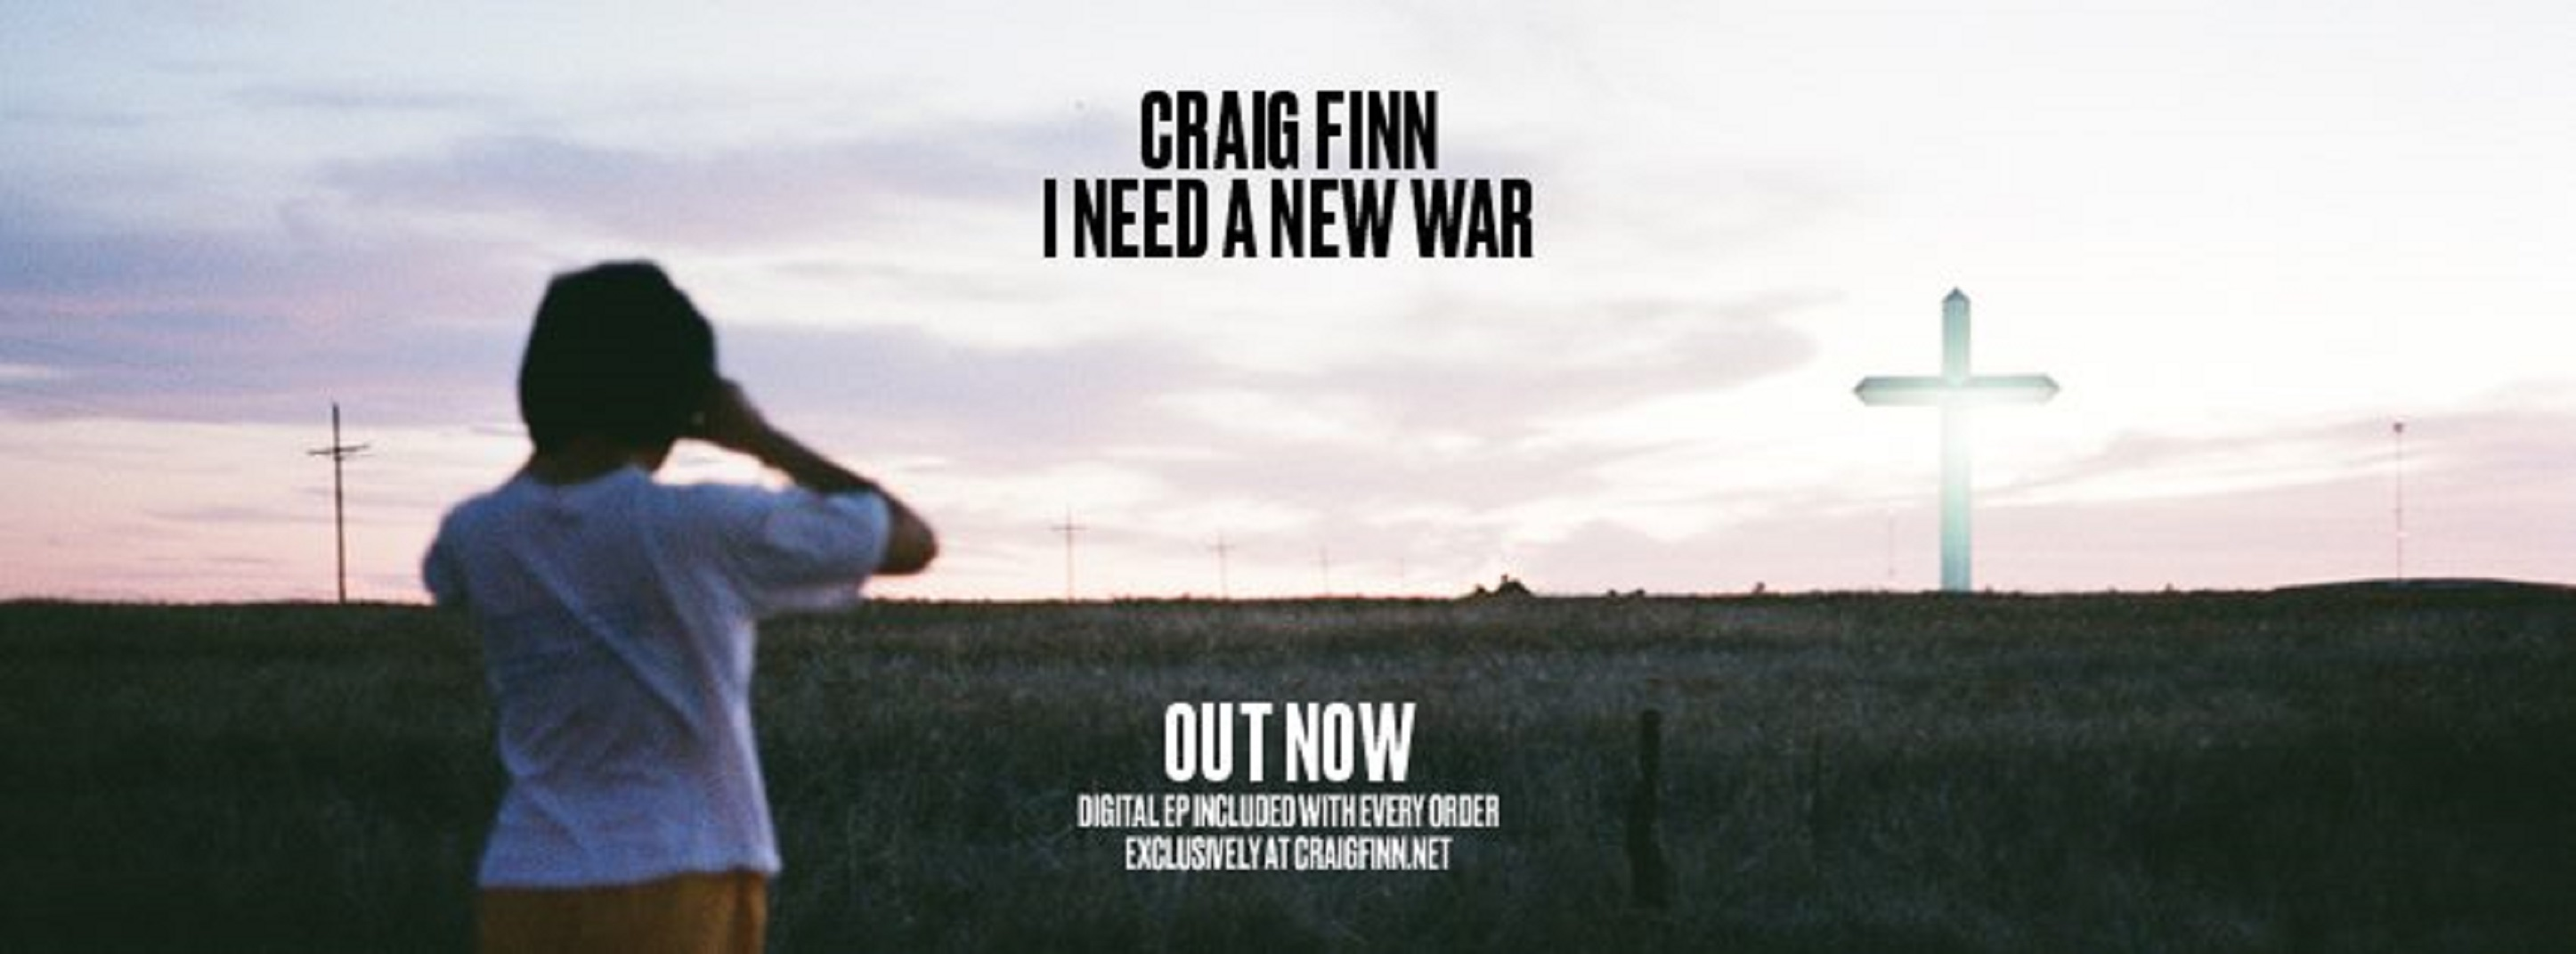 Craig Finn's new album out today